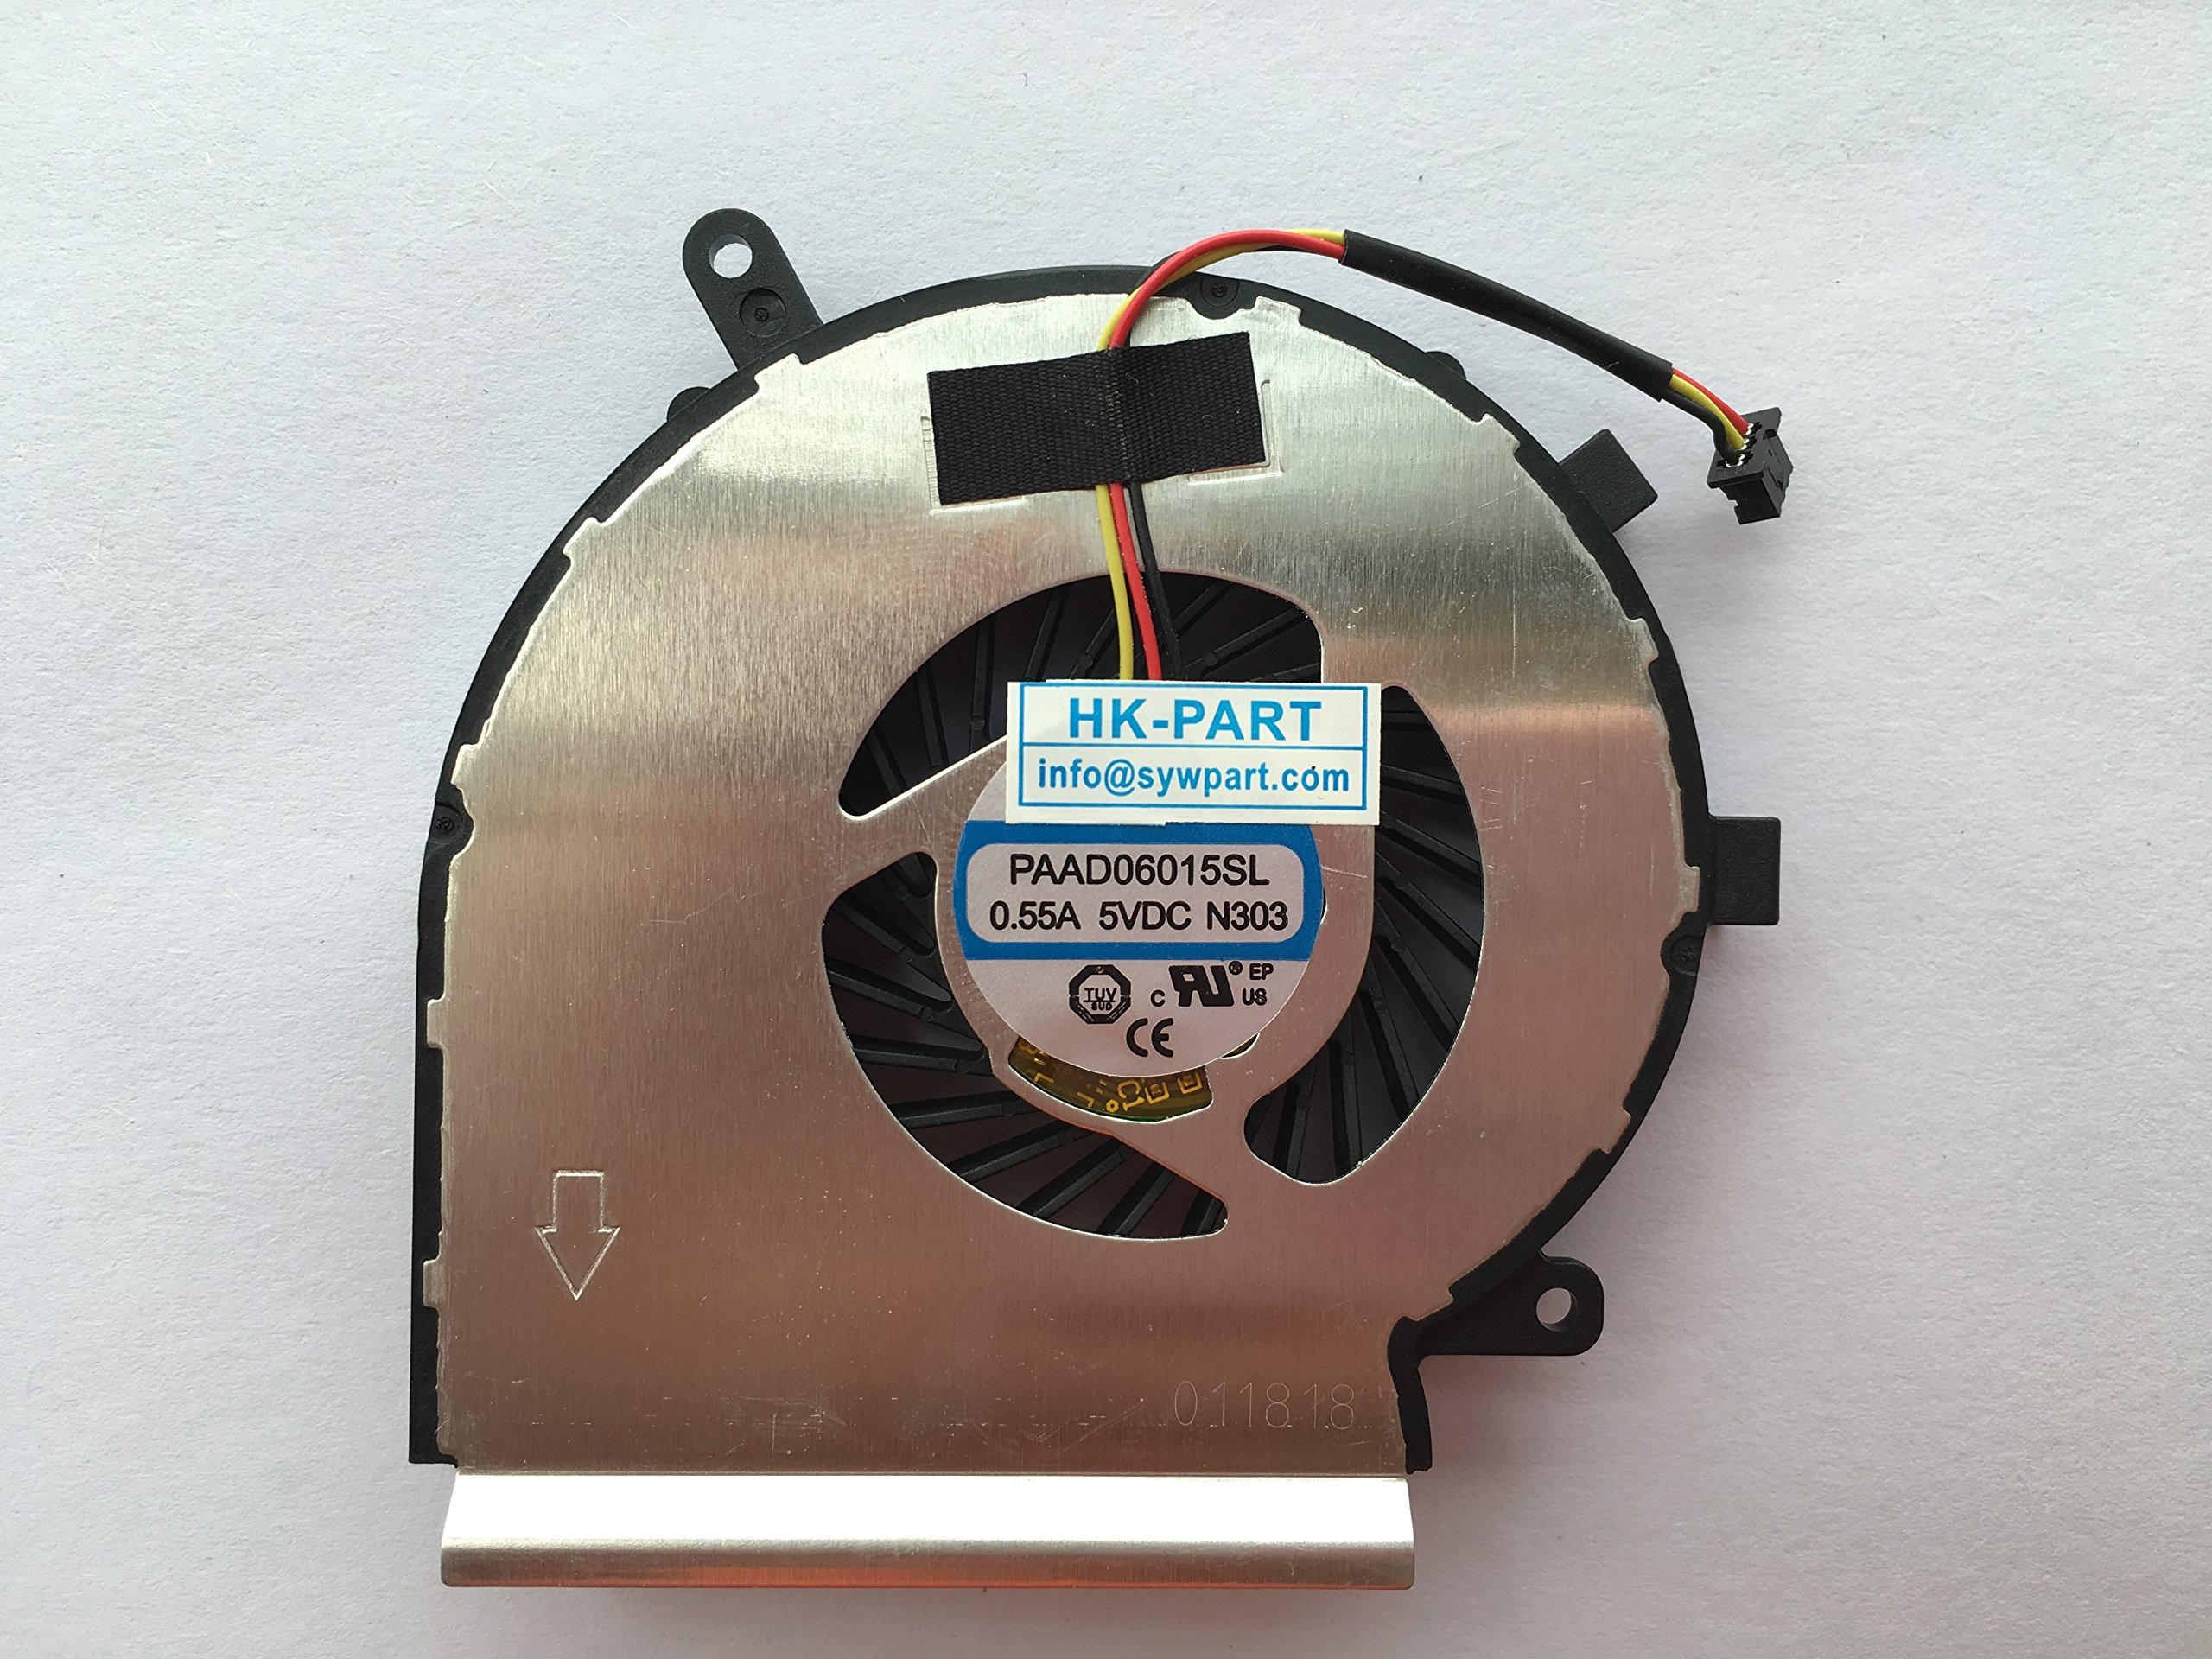 HK-Part Laptop Cpu Cooling Fan 3-Pin 3-Wire For AAVID THERMALLOY PAAD06015SL 0.55A 5VDC N303